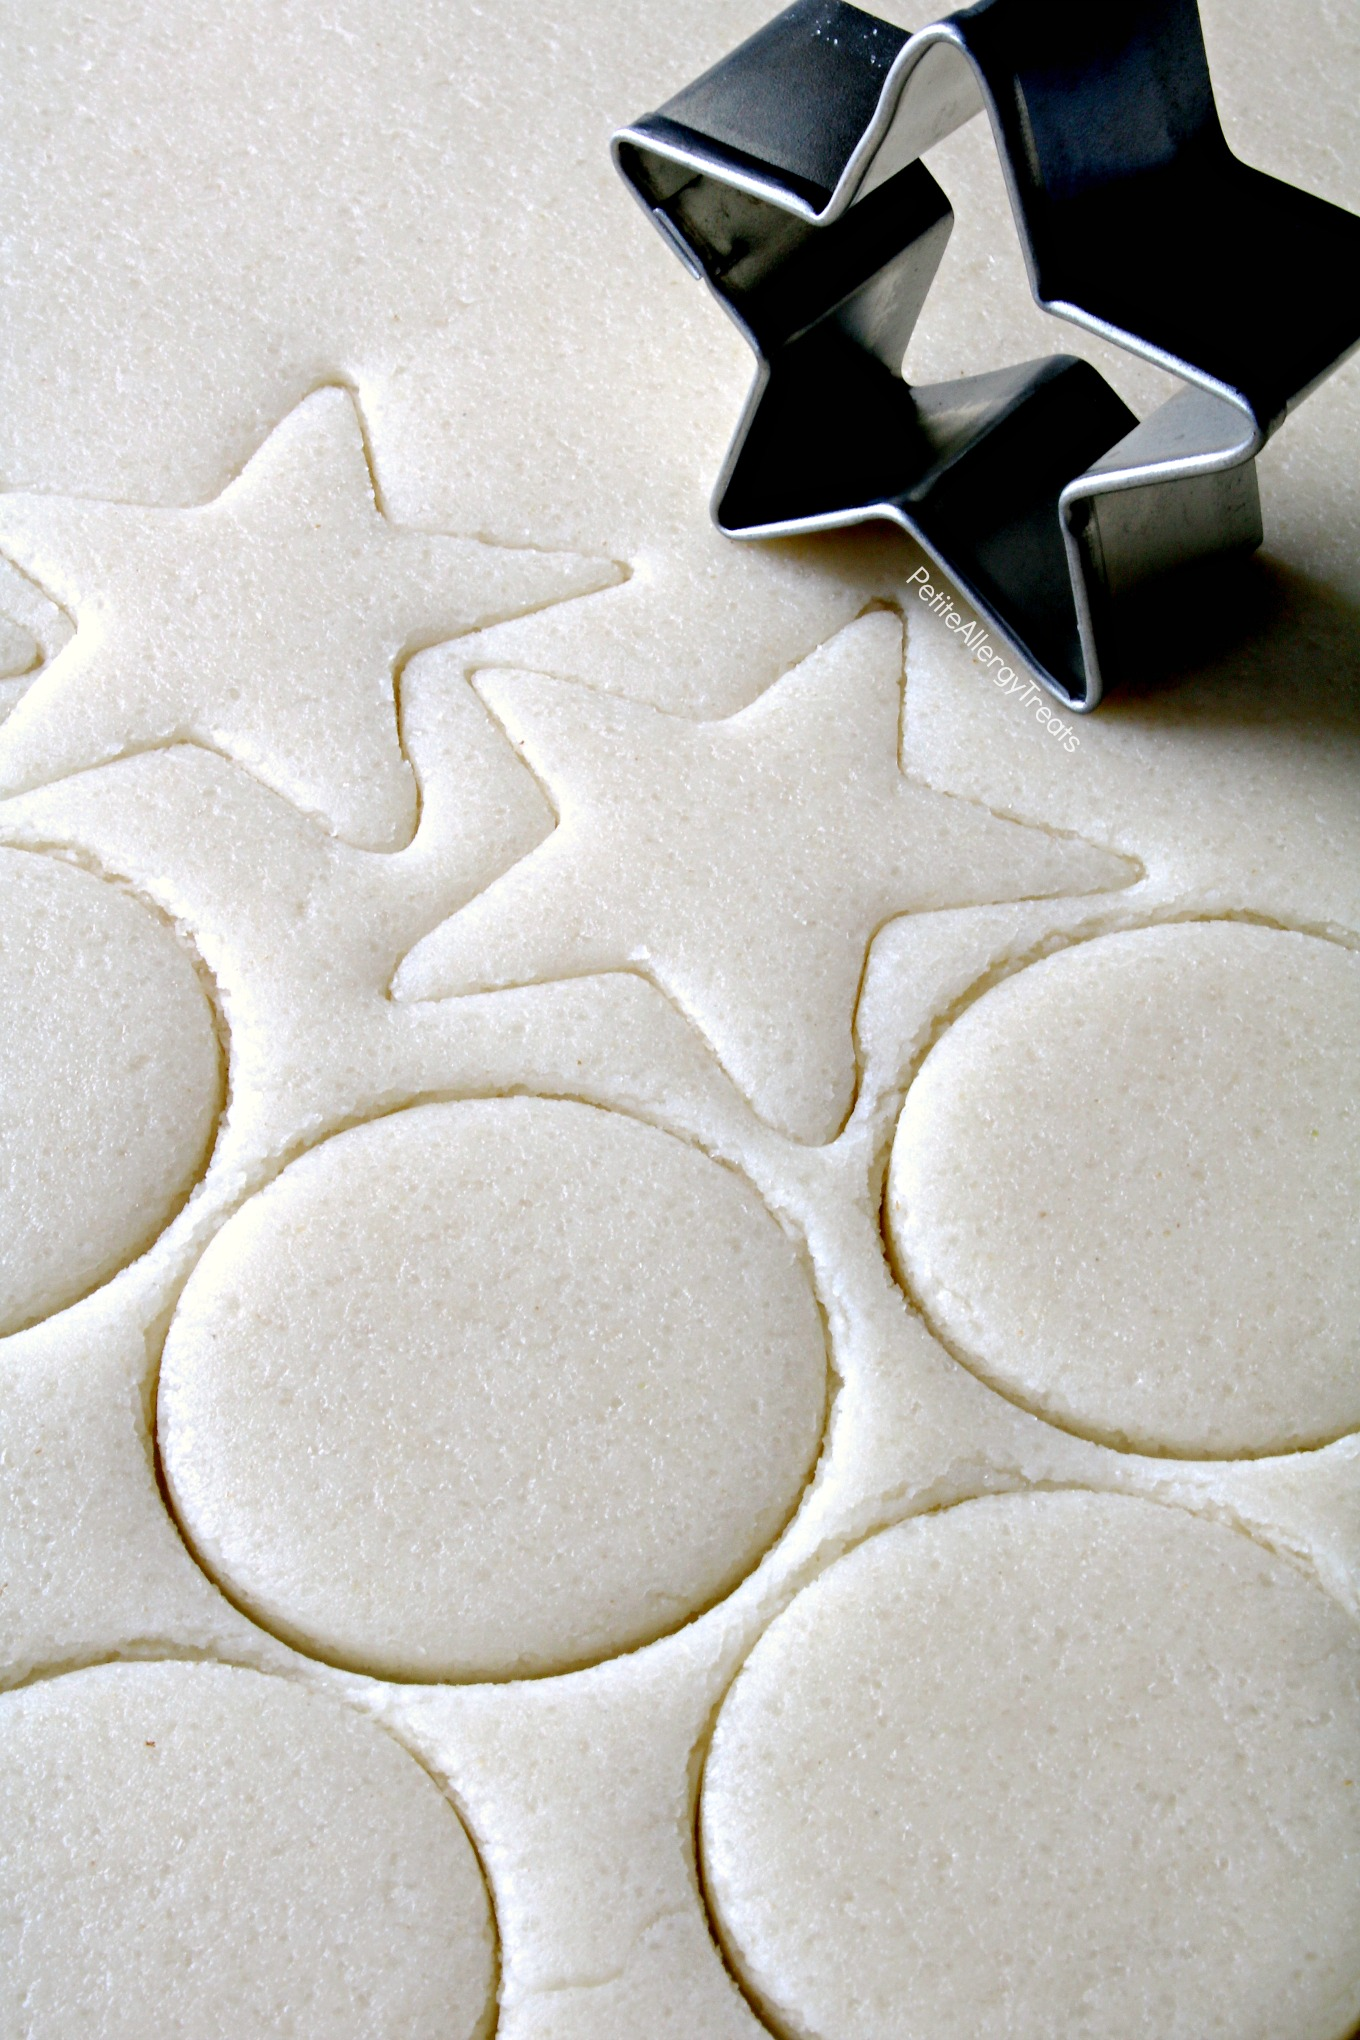 Gluten Free Roll out Sugar Cookies Recipe w/ egg free Royal Icing (vegan dairy free egg free)- BEST roll out sugar cookies! Perfect for Christmas. Food Allergy friendly.